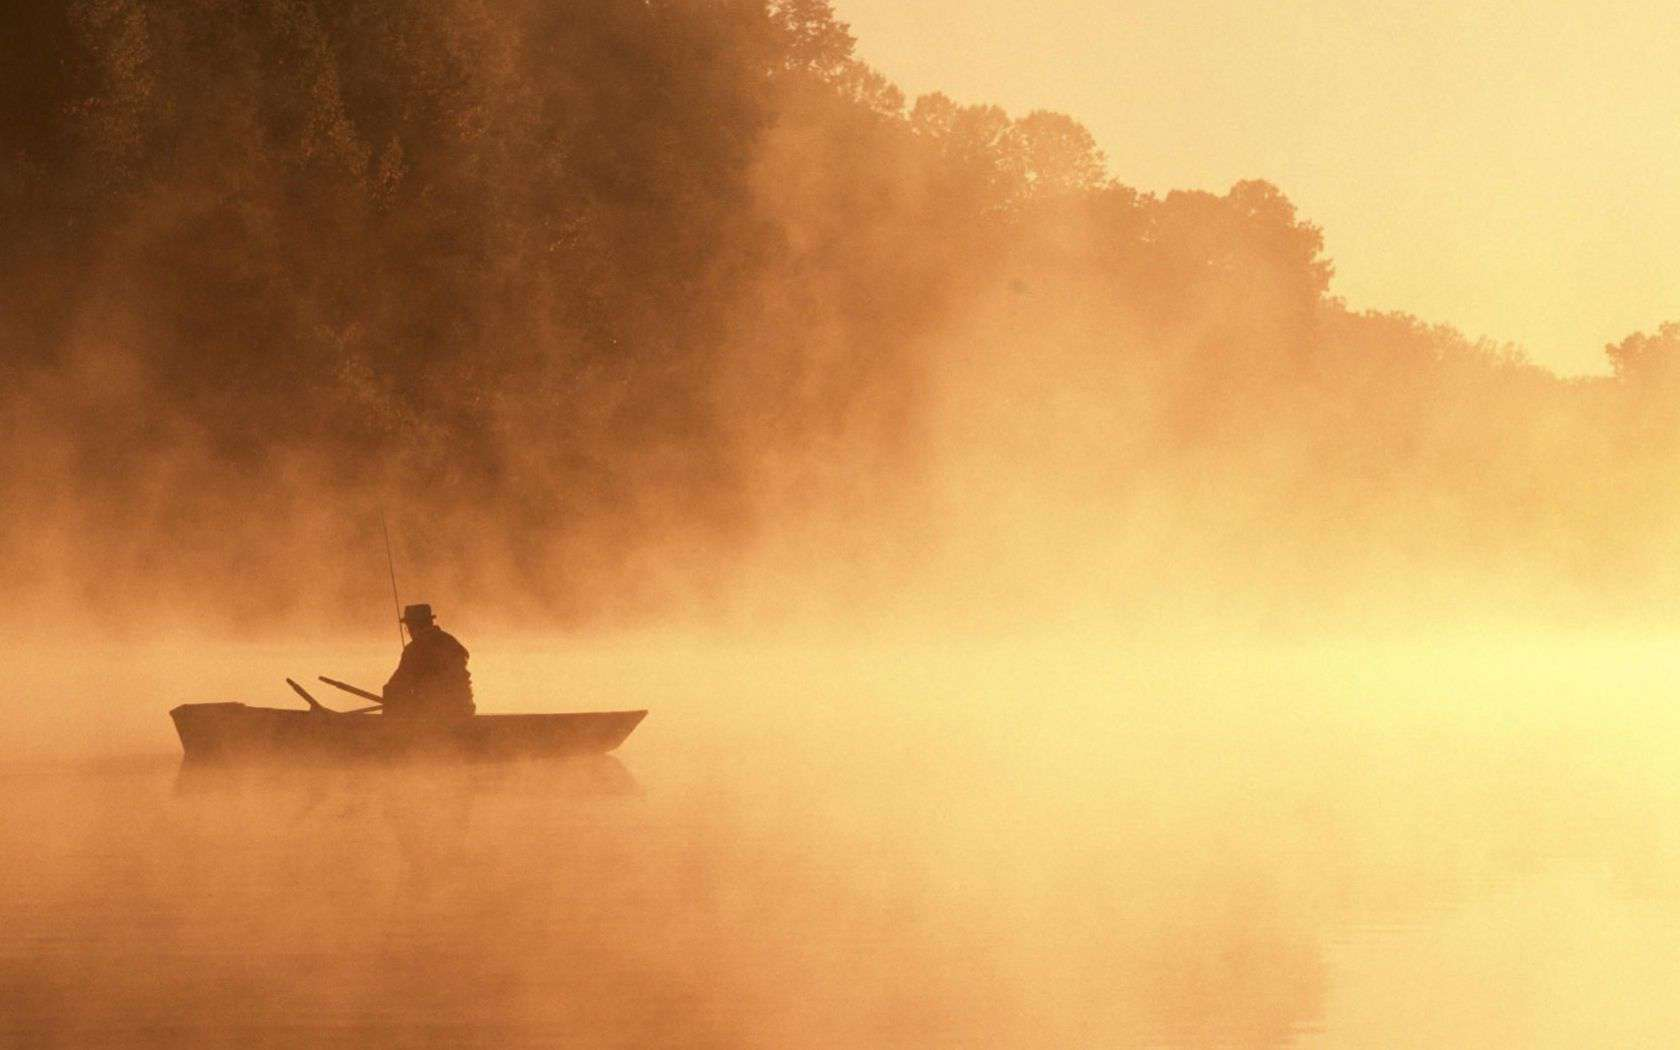 Fishing_in_the_Rising_Mist